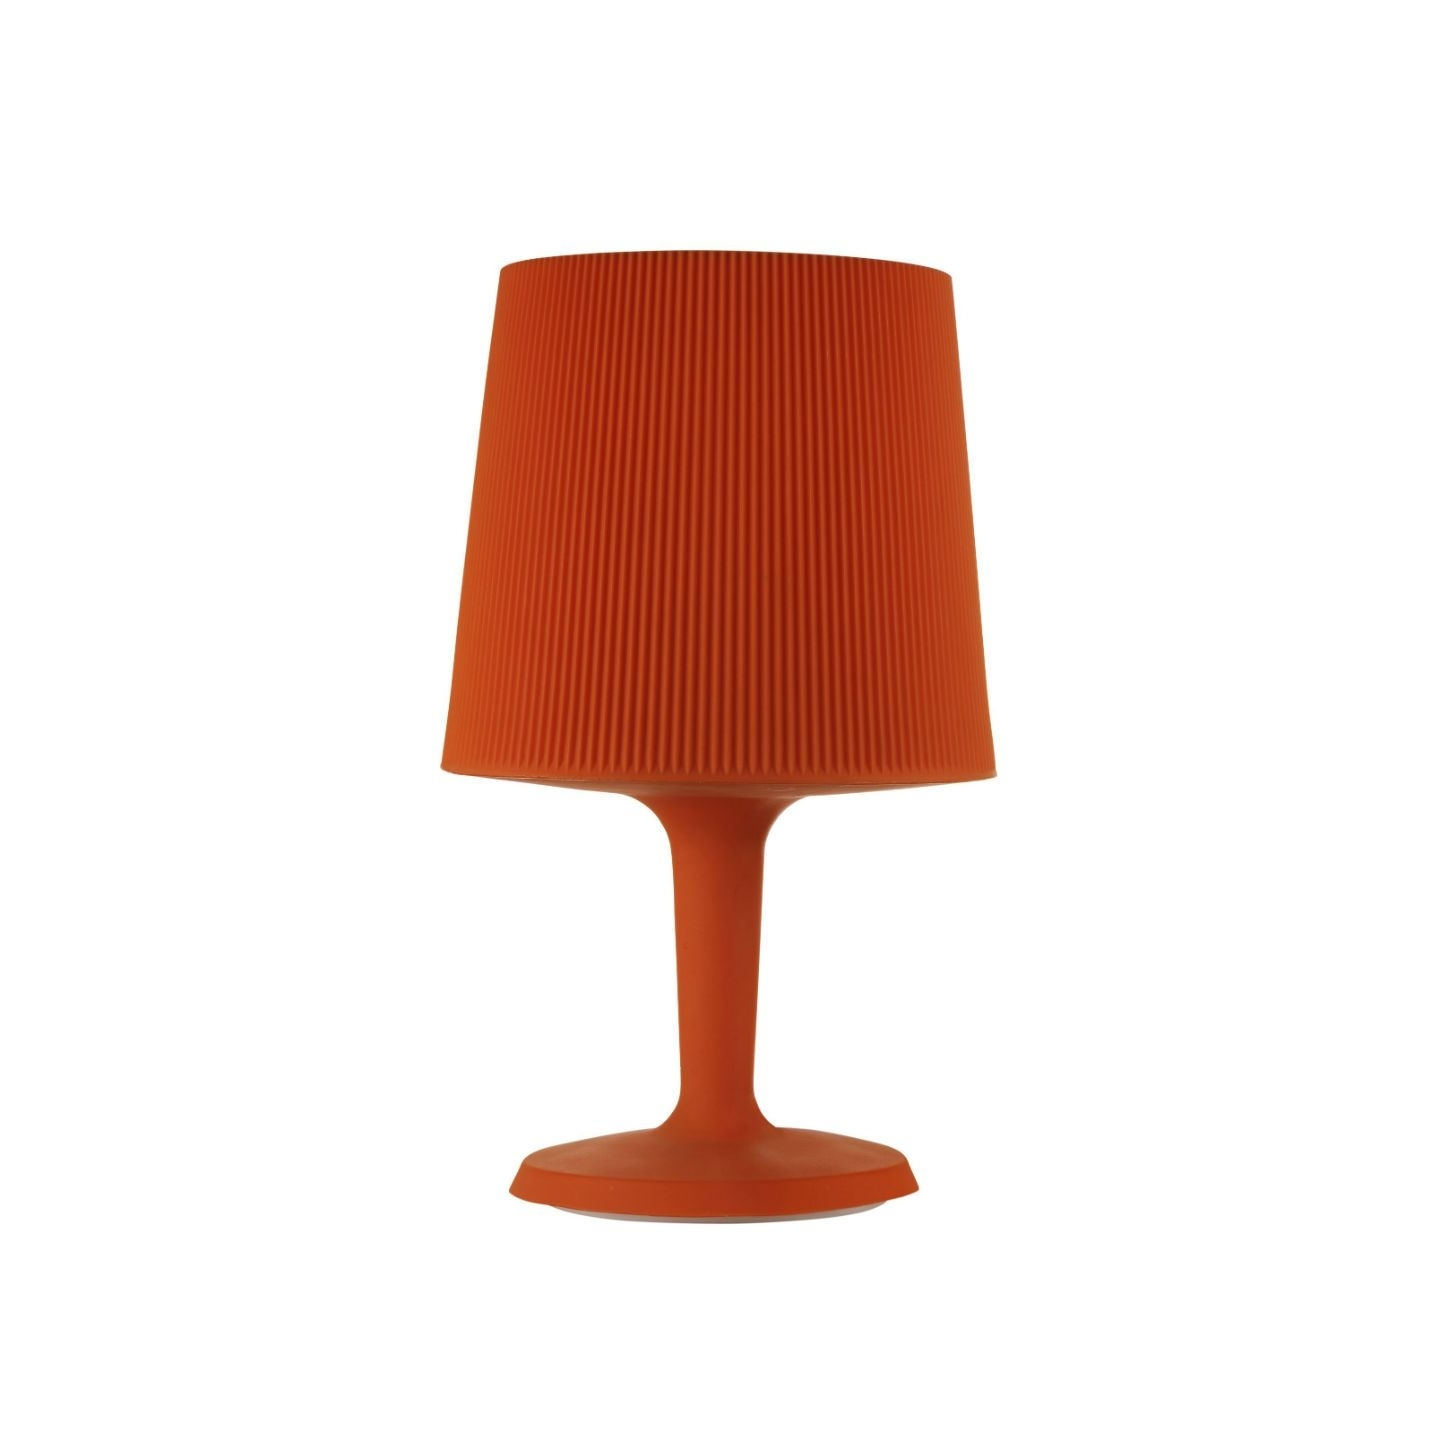 Metalarte Inout Table Lamp Small Of Outdoor Red 747800031, Small With Regard To Red Outdoor Table Lanterns (View 12 of 20)